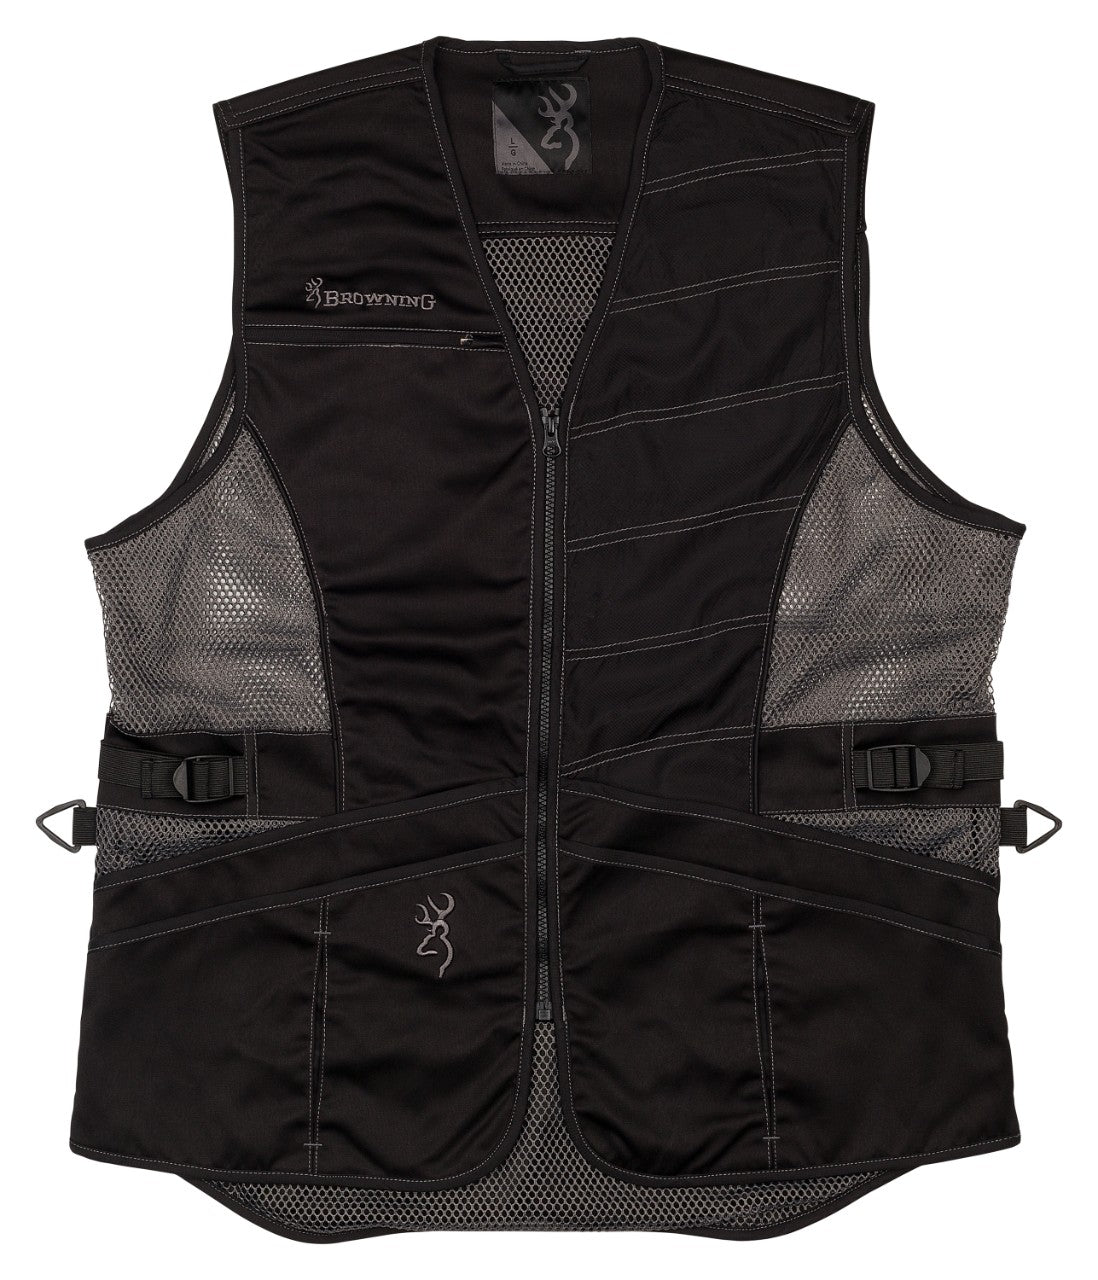 VST,ACE LH,BLACK/BLACK,2XL